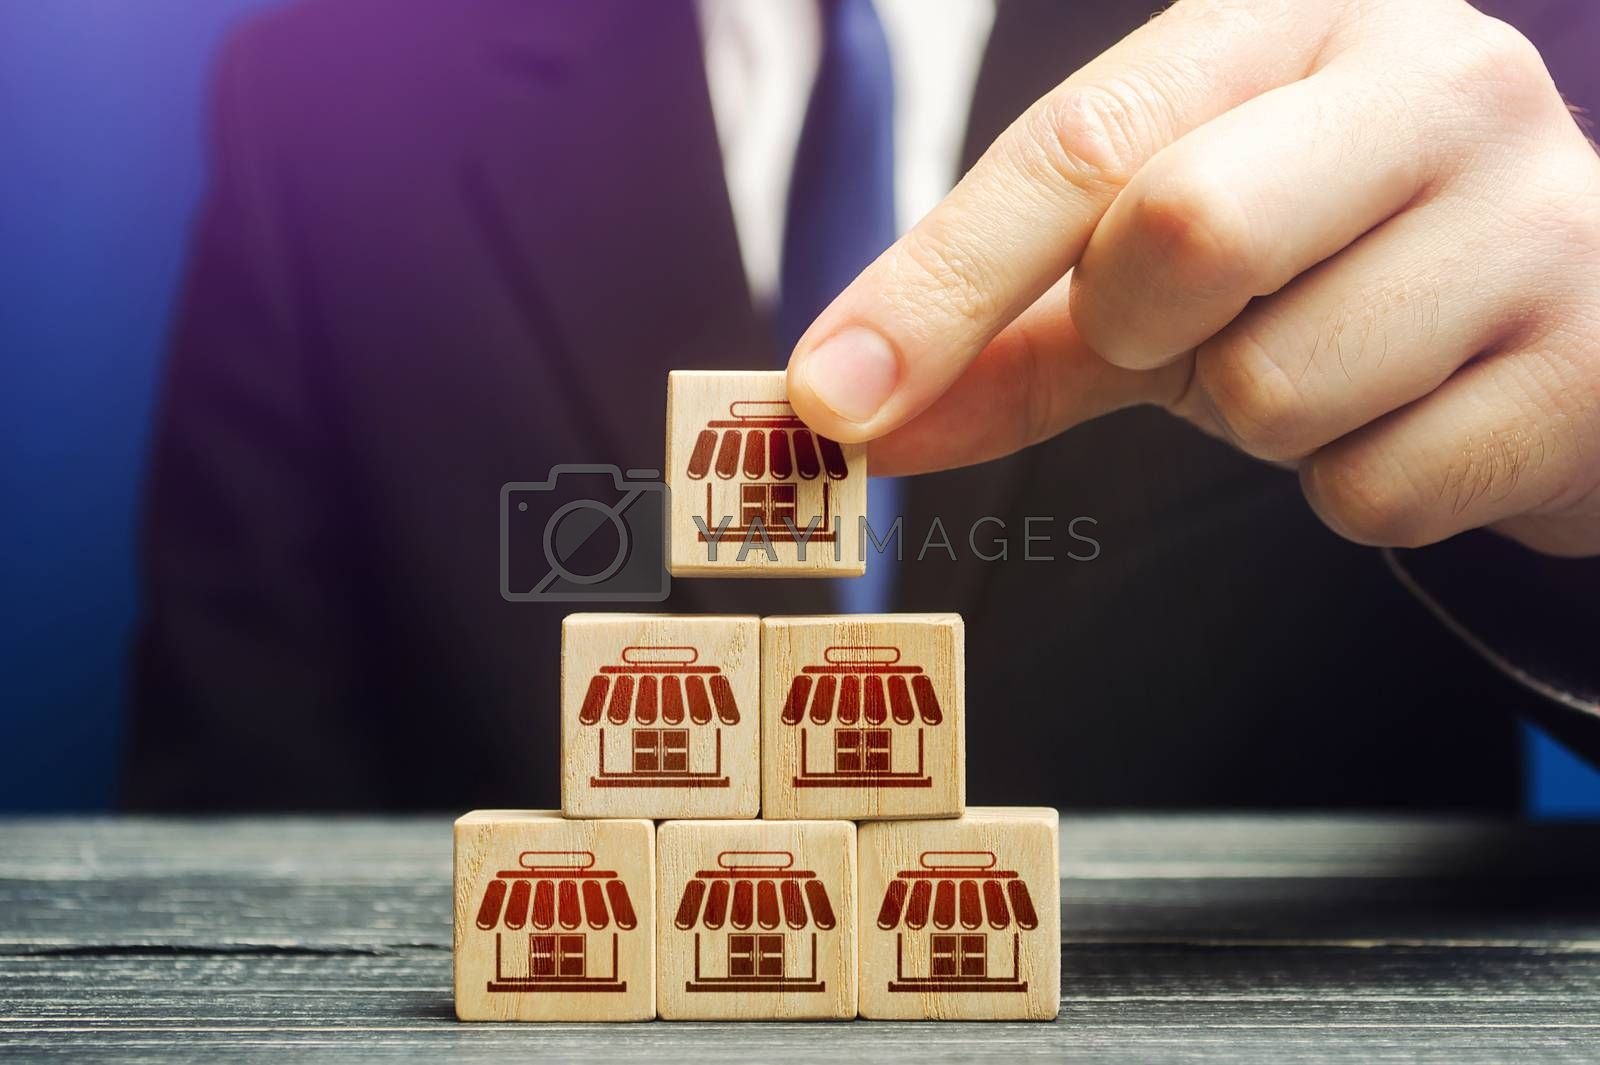 A man builds a pyramid from blocks of business shops. Building a successful business empire. Expansion and competitive growth. Franchise concession concept. Commercial network development.